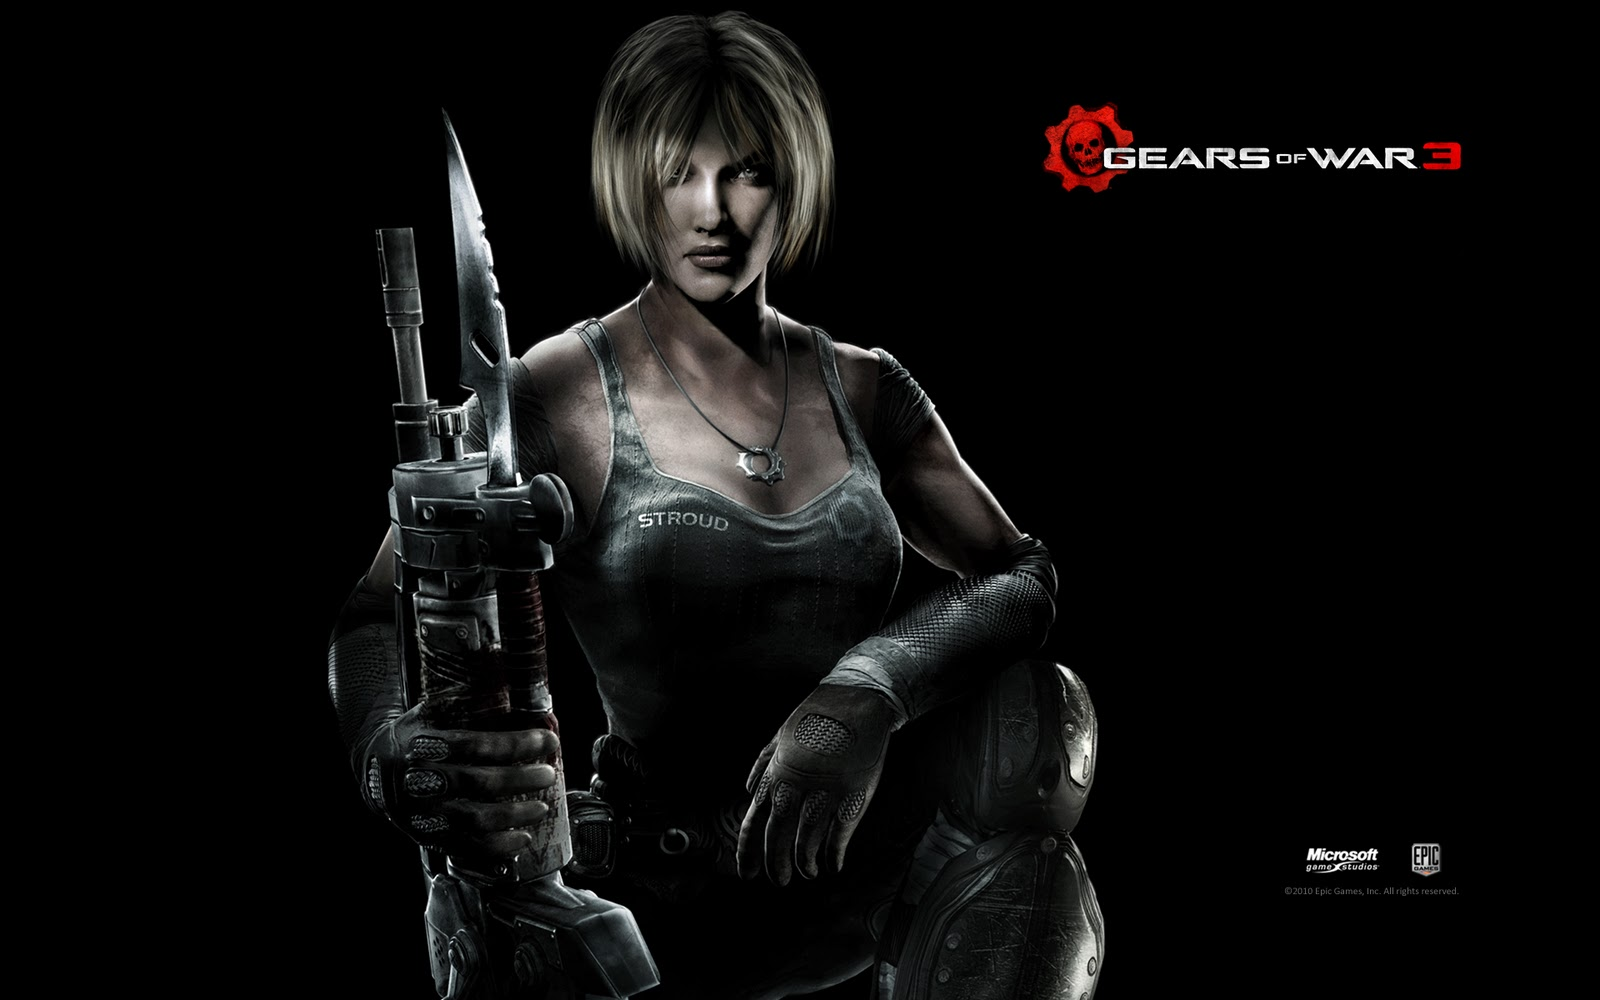 http://2.bp.blogspot.com/-kS2KHEO_mHk/TpGC4Xz0bhI/AAAAAAAAEQ8/Ey8PaEMNjMI/s1600/gears_of_war_3_game_2011-wide.jpg